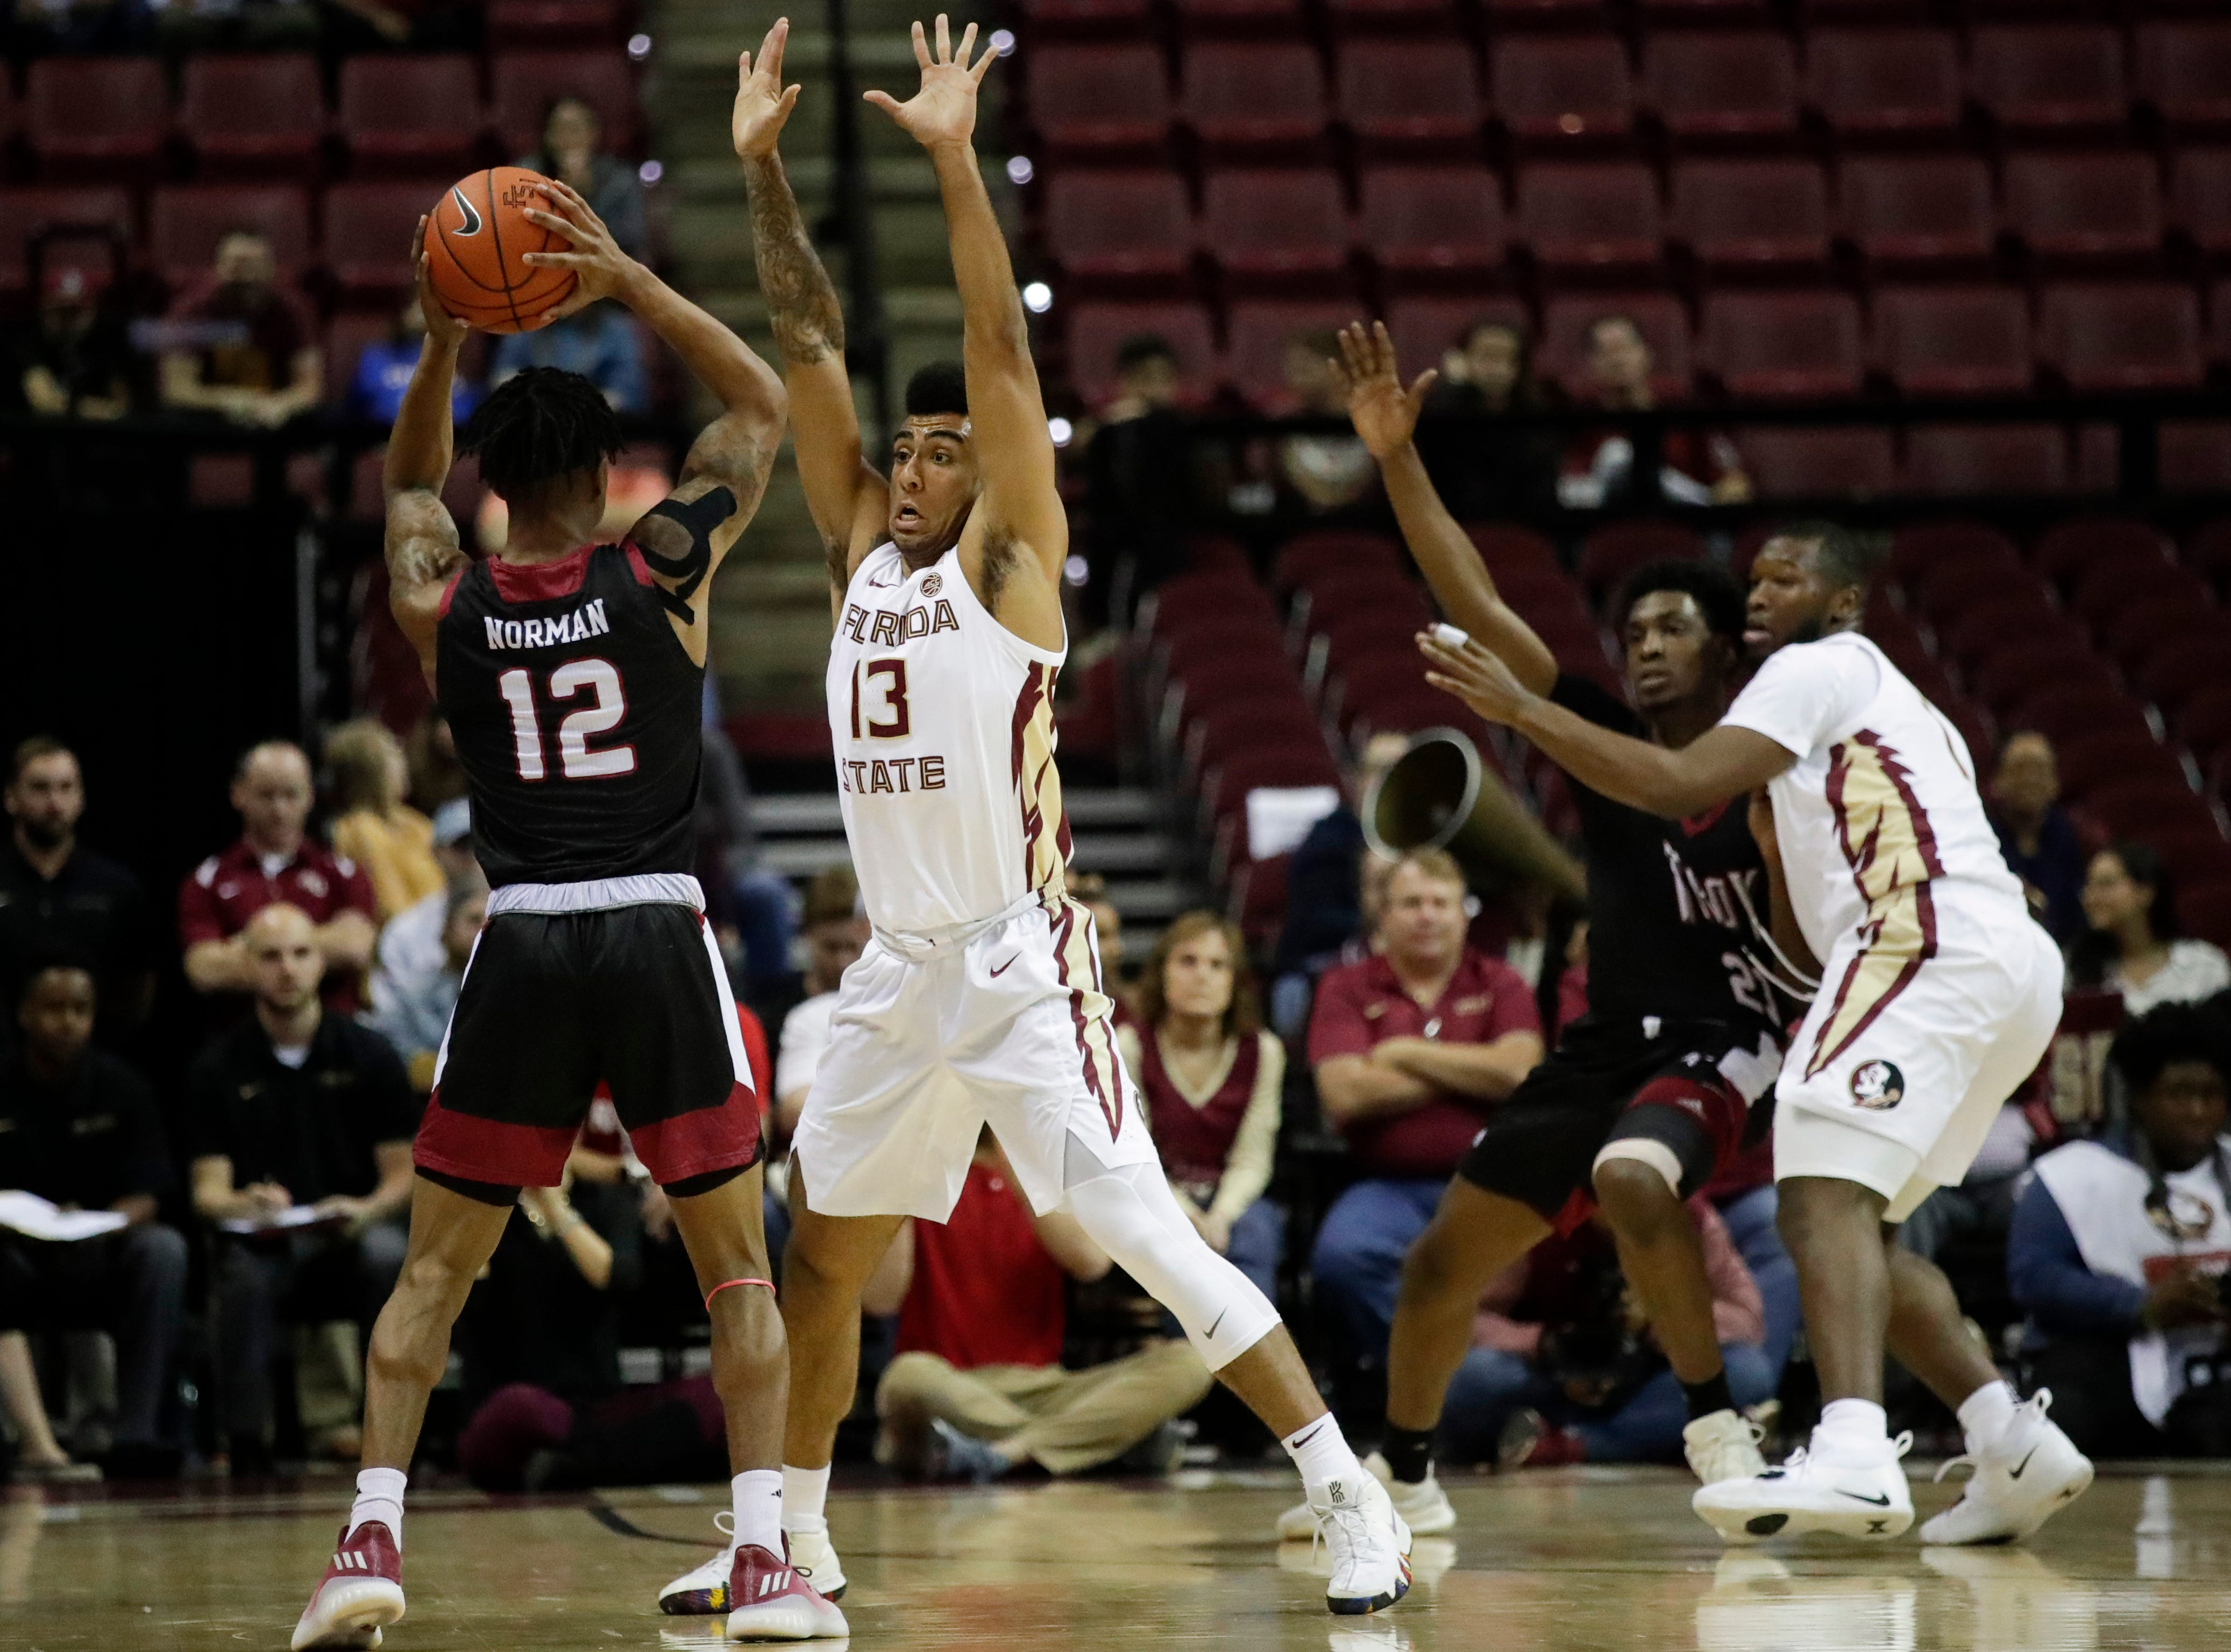 Florida State Seminoles guard Anthony Polite (13) guards Troy Trojans guard Charles Norman (12) during a game between FSU and Troy University at Donald L. Tucker Civic Center Monday, Dec. 3, 2018.